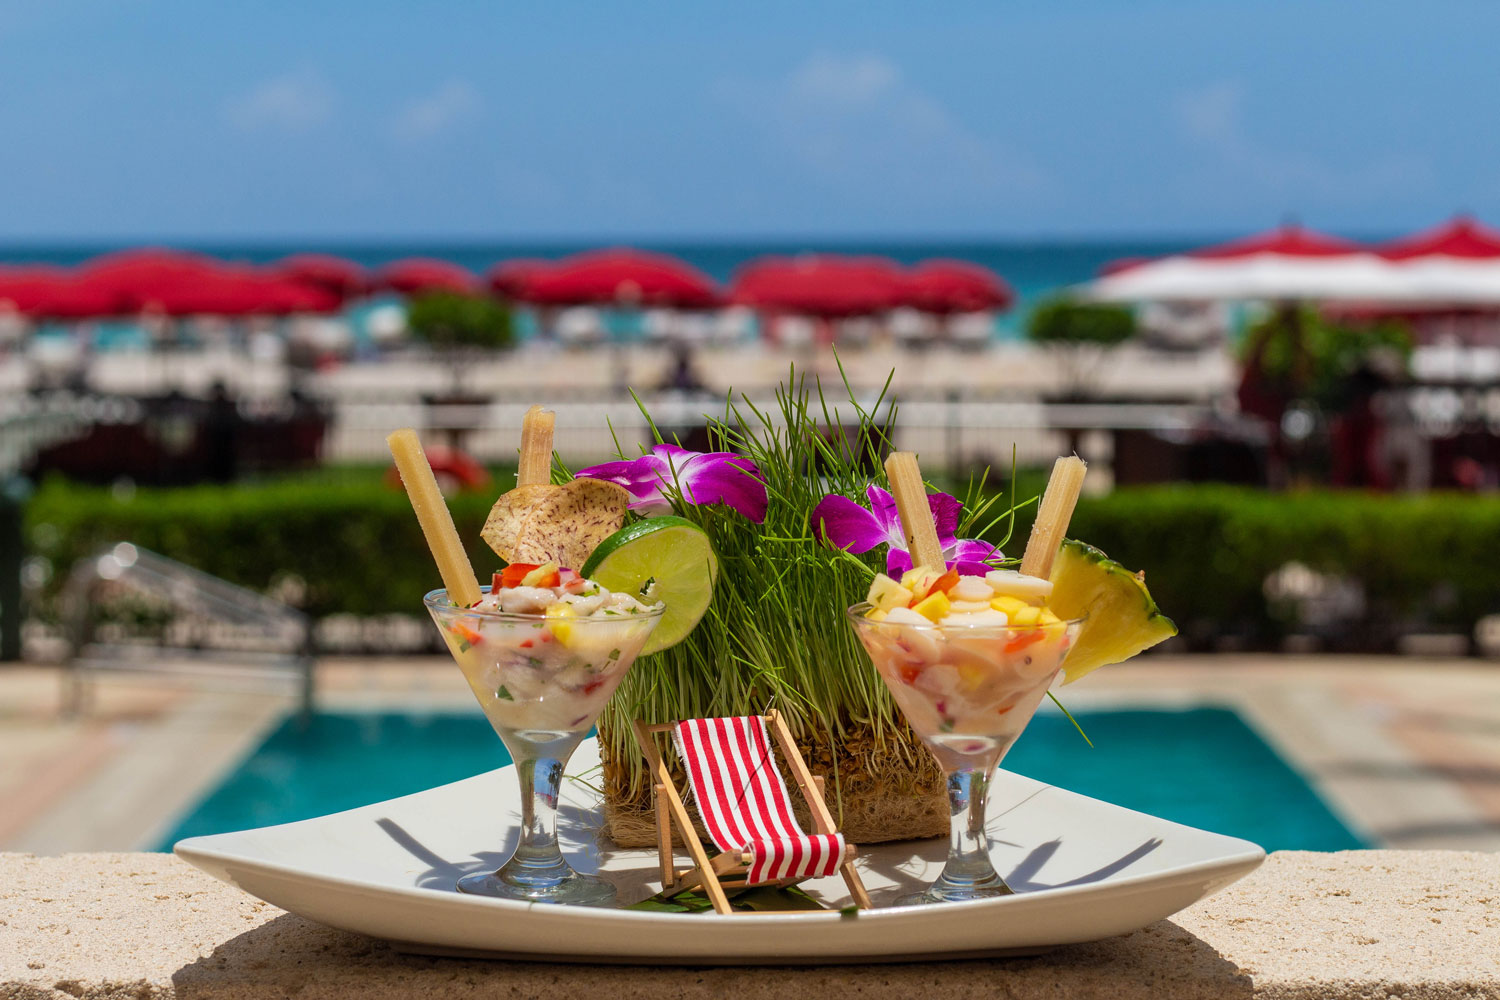 Pineapple mojito ceviche and vegan hearts of palm and mango ceviche gluten free acqualina resort and spa entertaining ideas